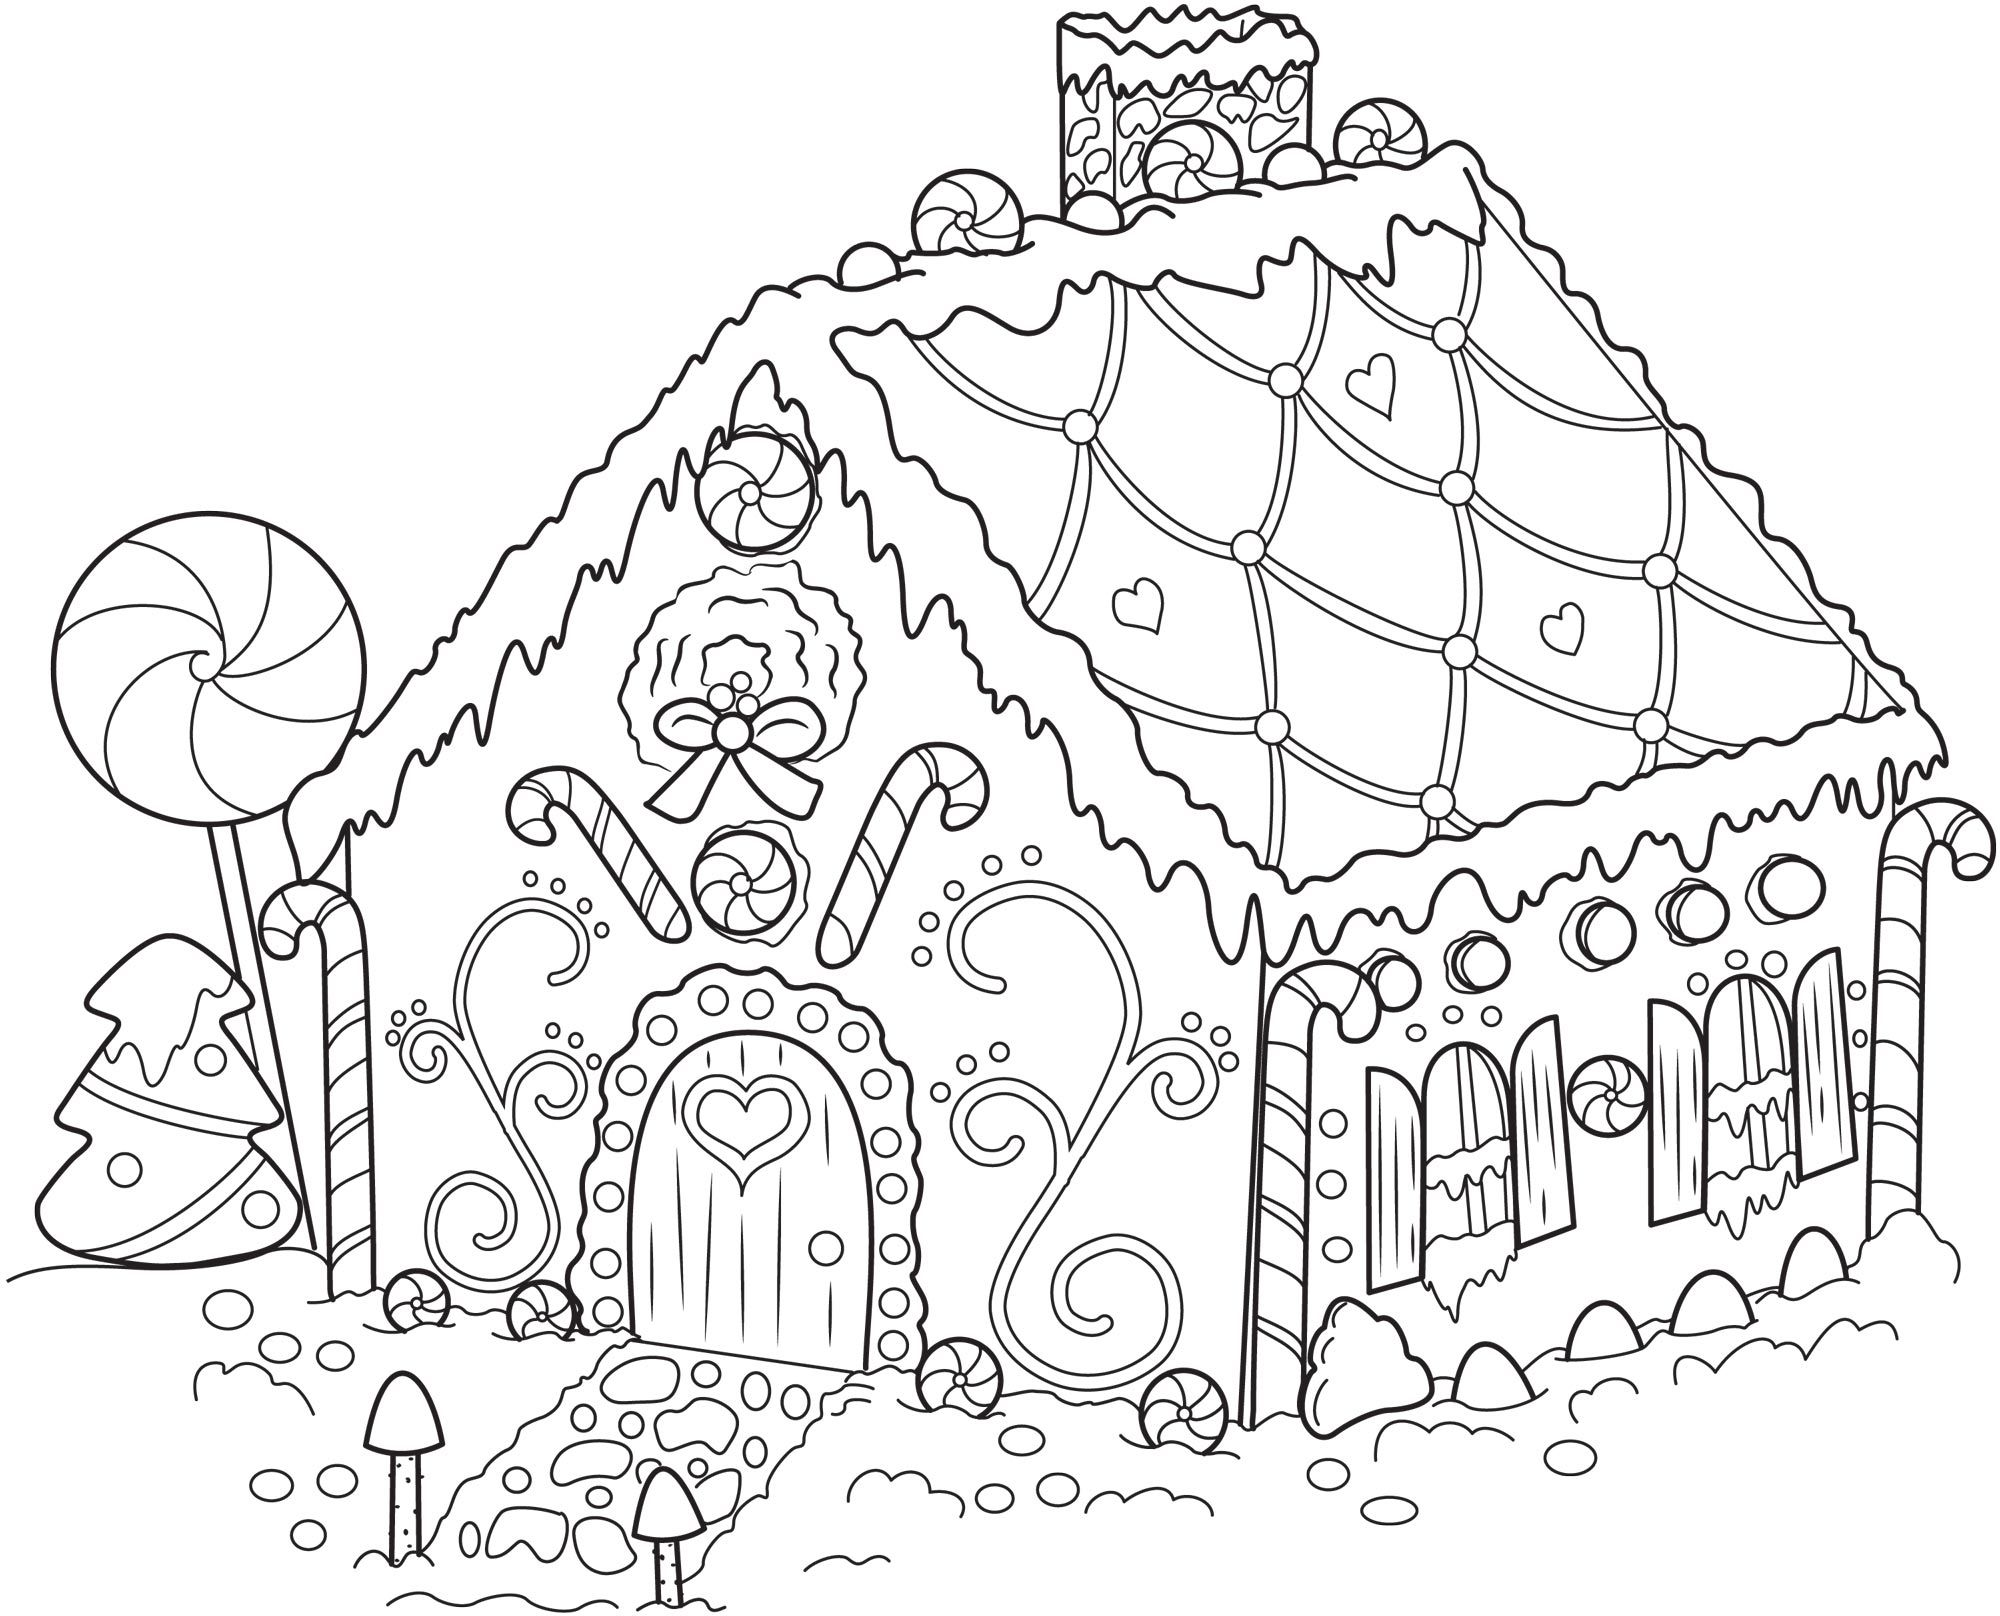 Http Www Kathysdotcom Com Coloring Gingerbreadhouseonly Jpg Printable Christmas Coloring Pages Snowflake Coloring Pages Free Christmas Coloring Pages